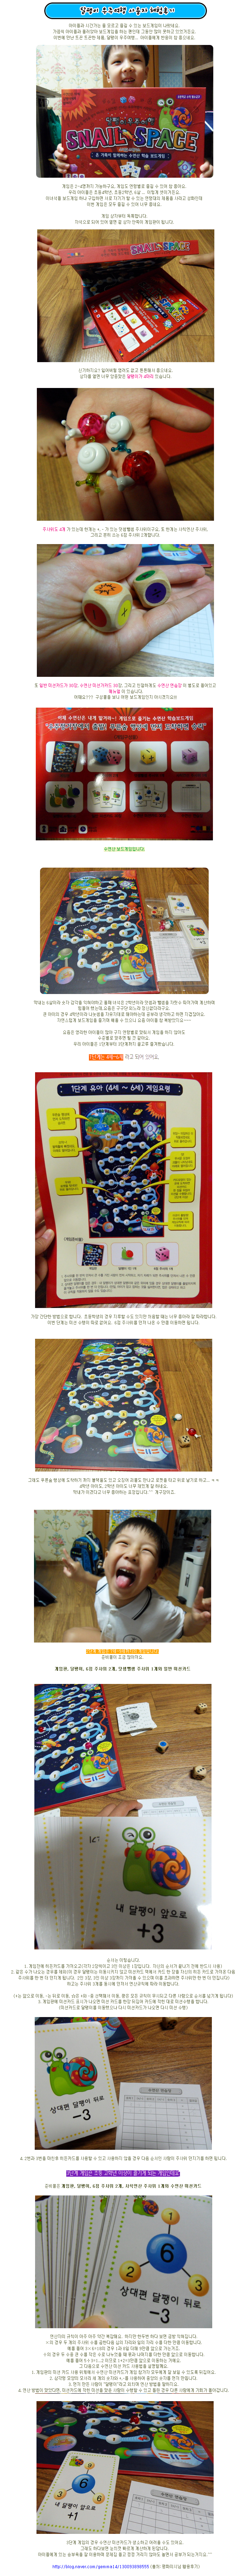 Joymath Number Operation Learning Board